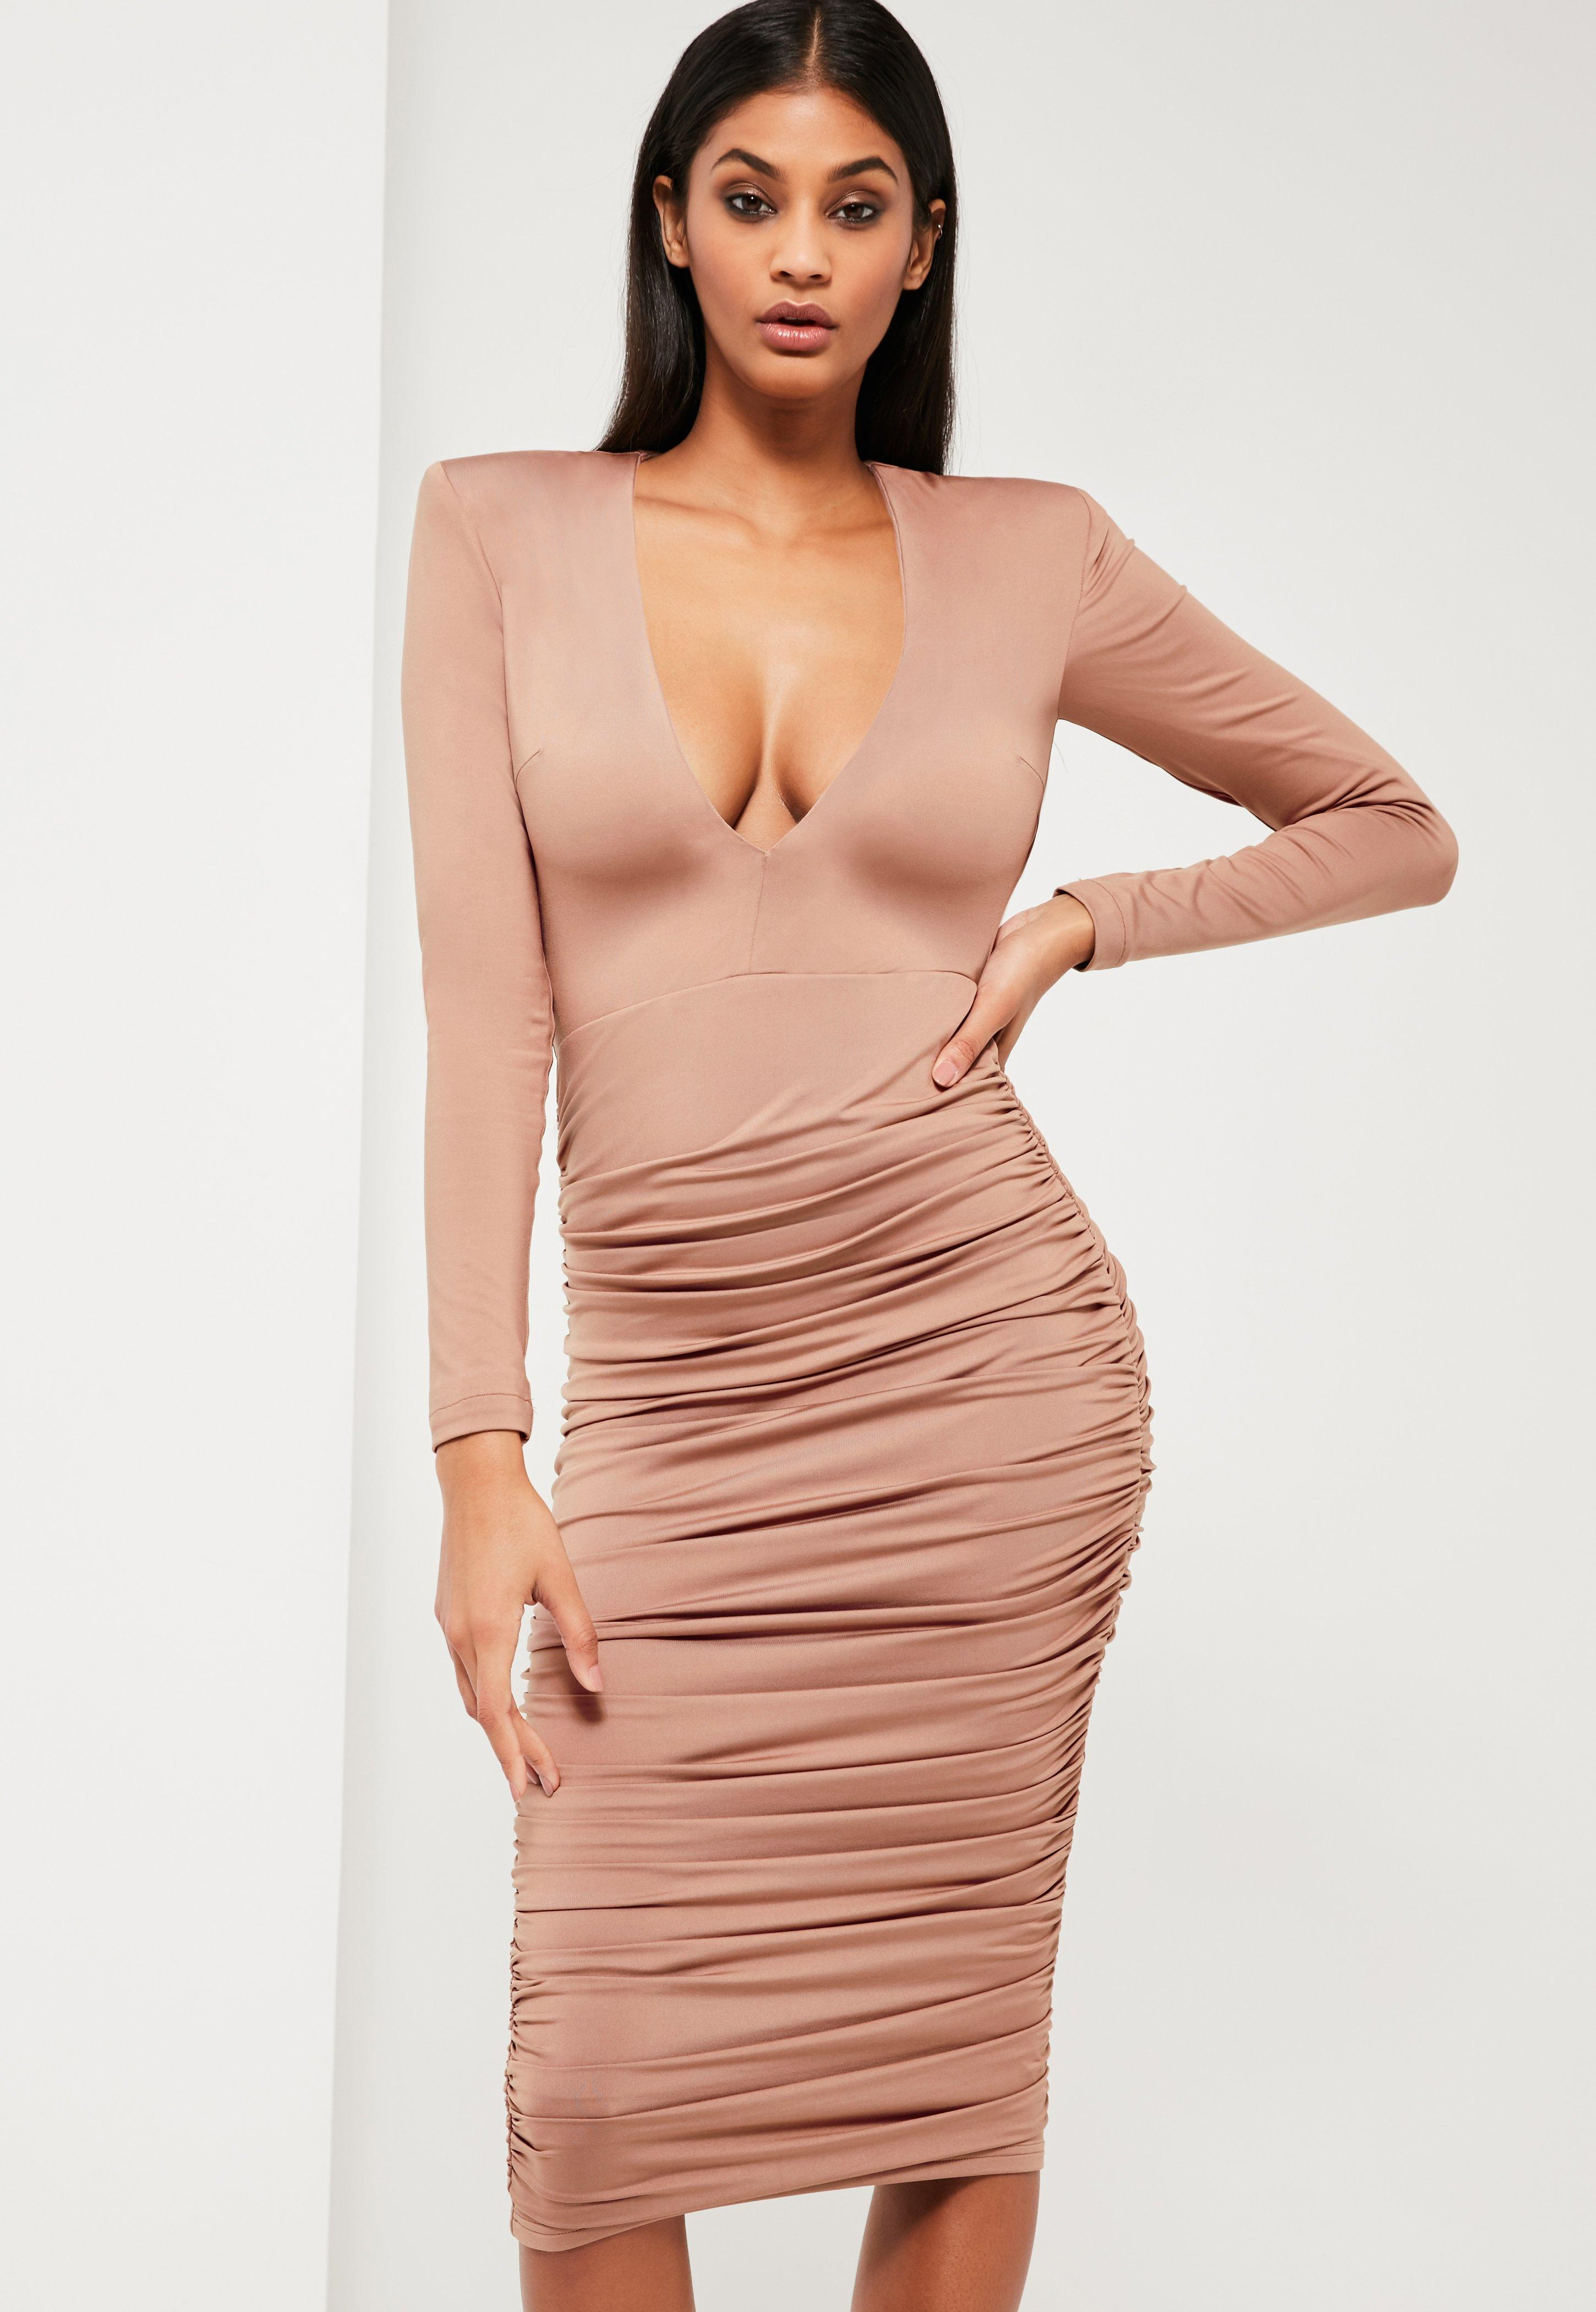 ba19e5d663 Missguided Peace + Love Nude Ruched Plunge Neck Midi Dress in ...